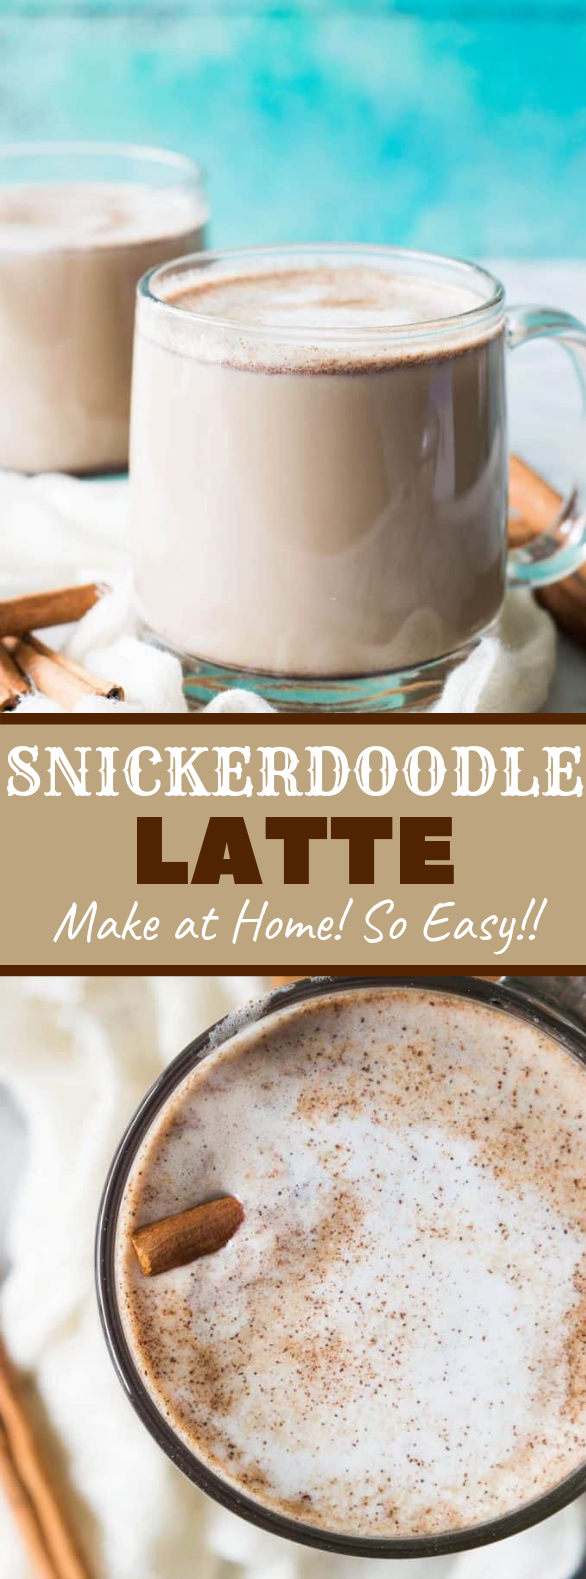 Snickerdoodle Latte #drinks #recipes